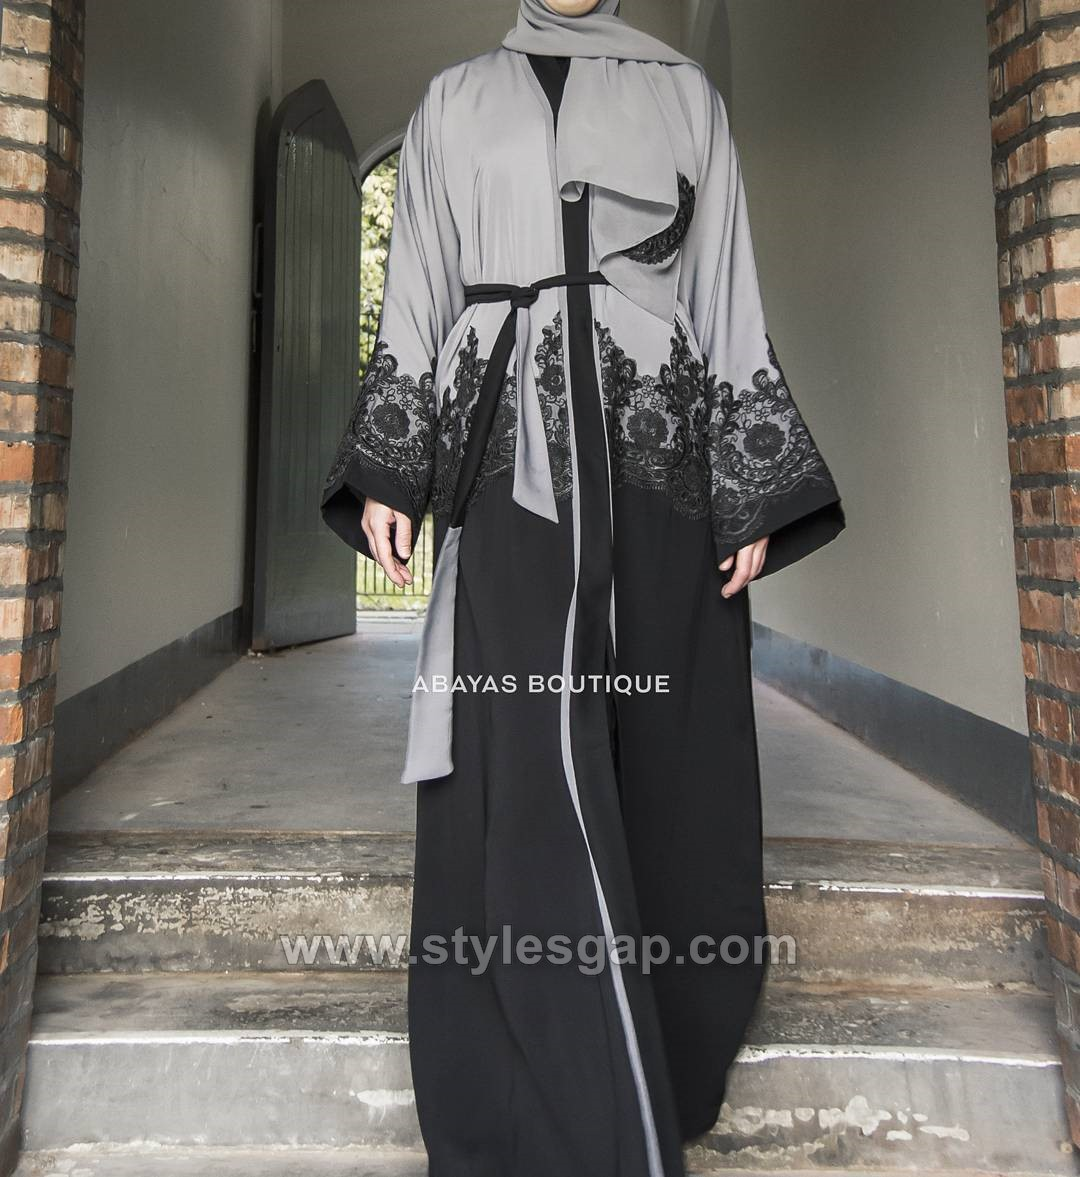 Fancy Lace Embroidered Abaya Designs Latest Collection 2018 2019 Hitam Arab Gold Black Leaf Like Inner Belt Open Dress Has A Practical Style With Simple Kimono Sleeves And Cotton Floral On Cuffs Hem Of The